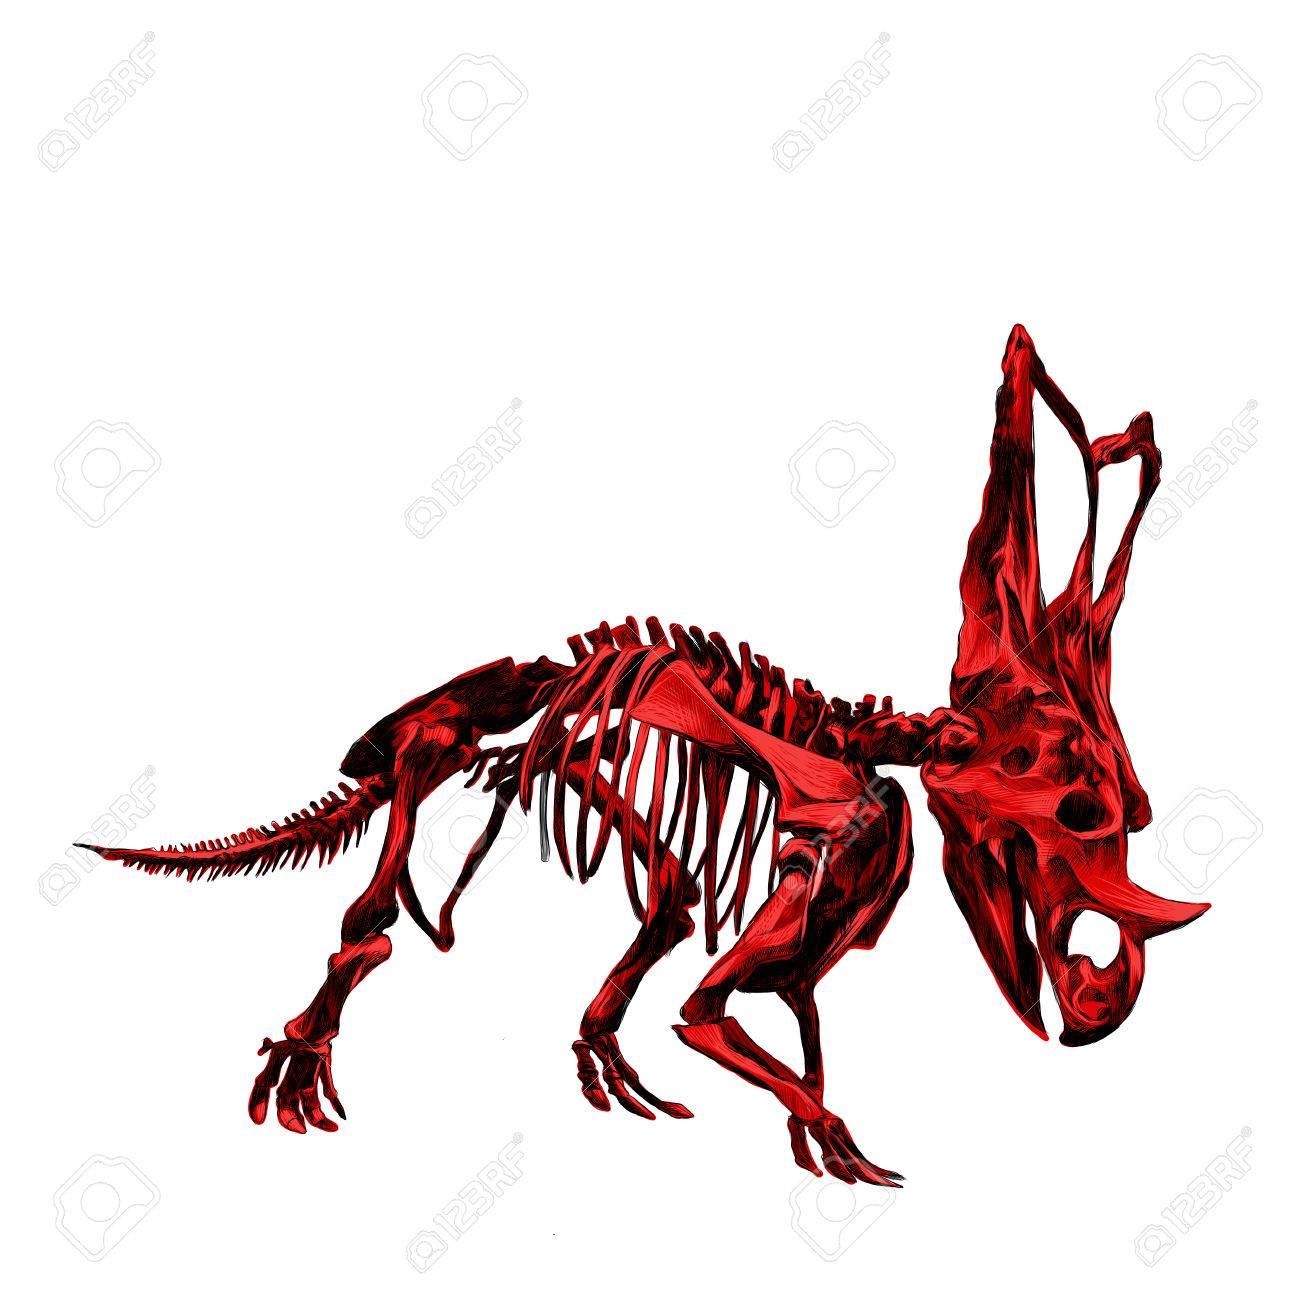 1300x1300 The Skeleton Of The Red Dinosaur Triceratops, Colored Drawing